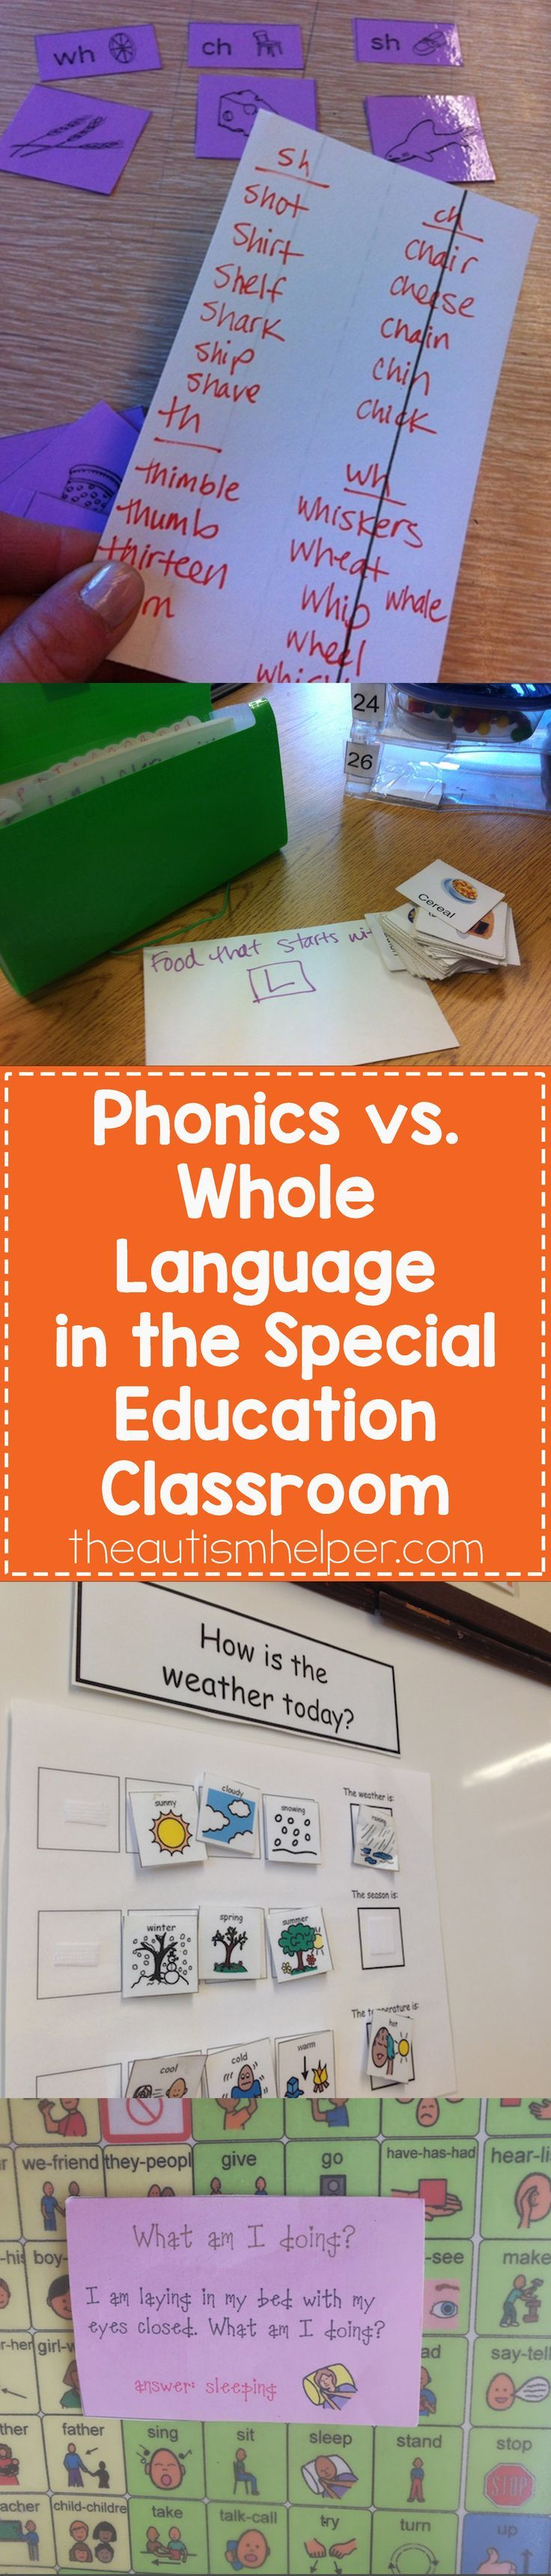 phonics vs whole language essay This essay phonics vs whole language is available for you on essays24com honestly, there is not a simple answer education specialists have been arguing over the issue of phonics vs whole language for years and a definite answer still has yet to be determined.